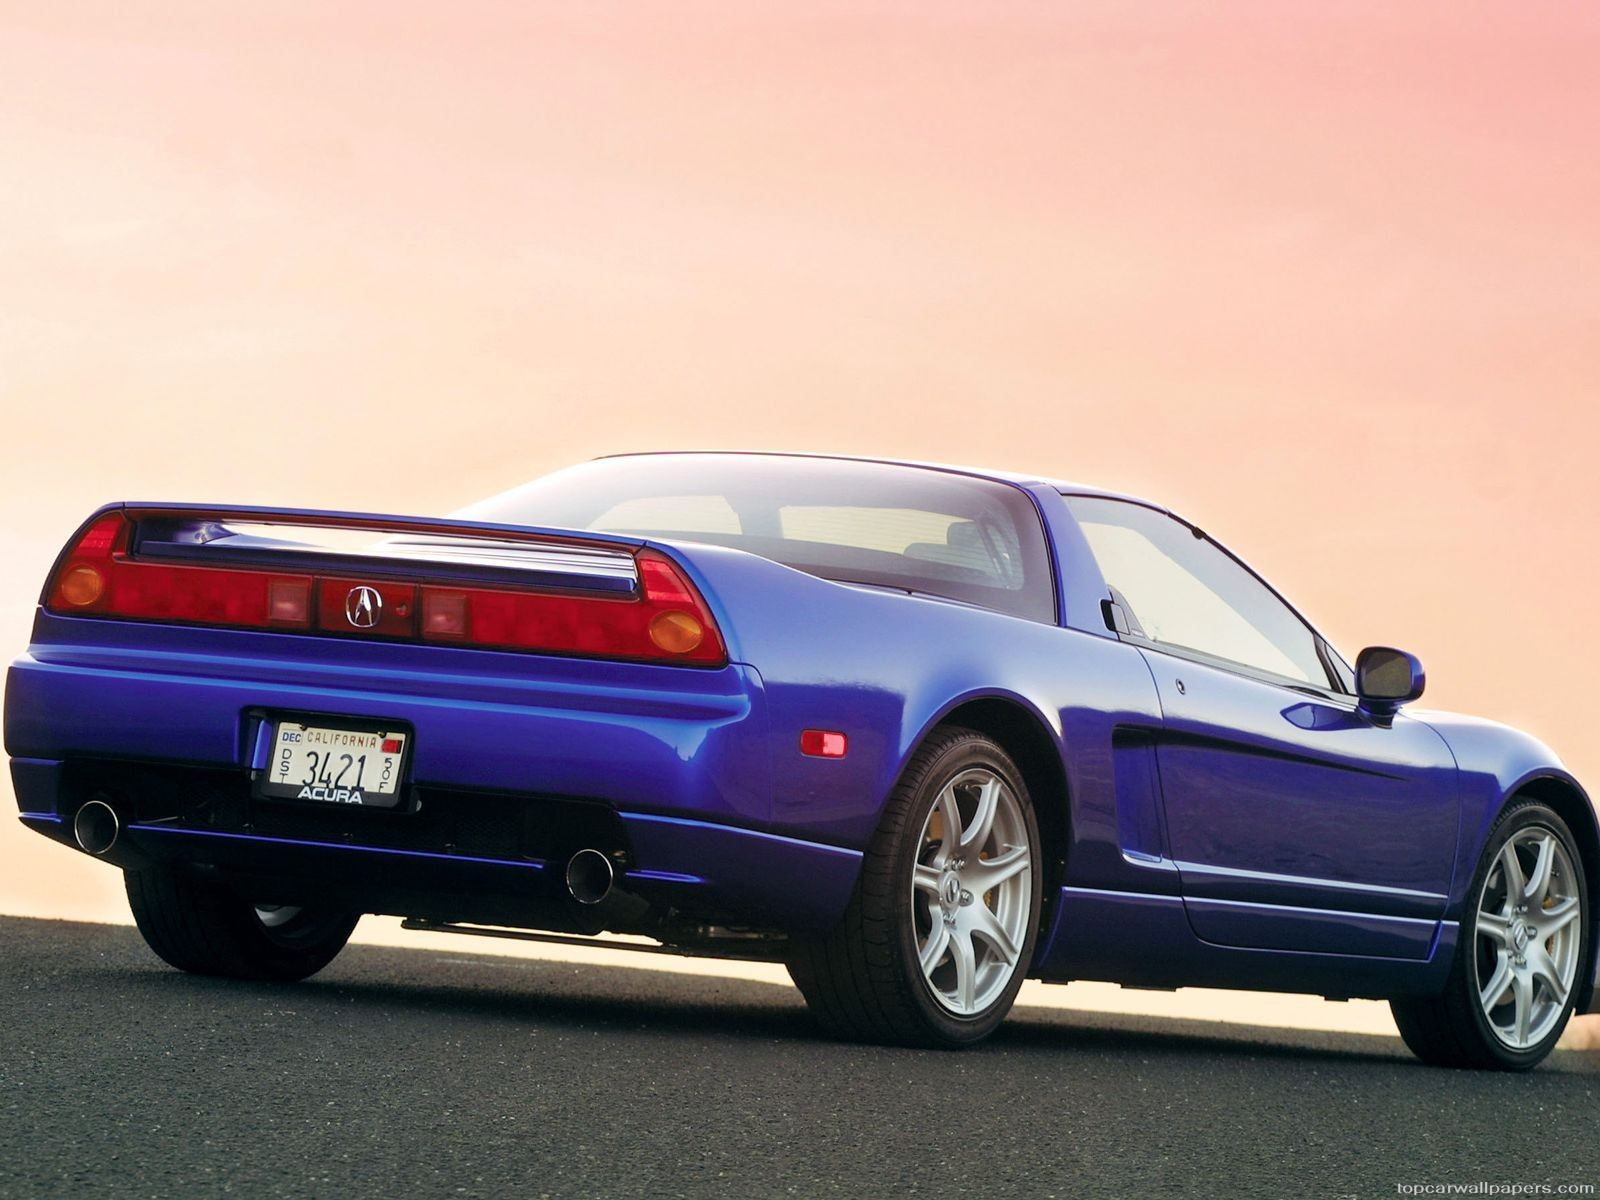 2005 Acura NSX photo - 2